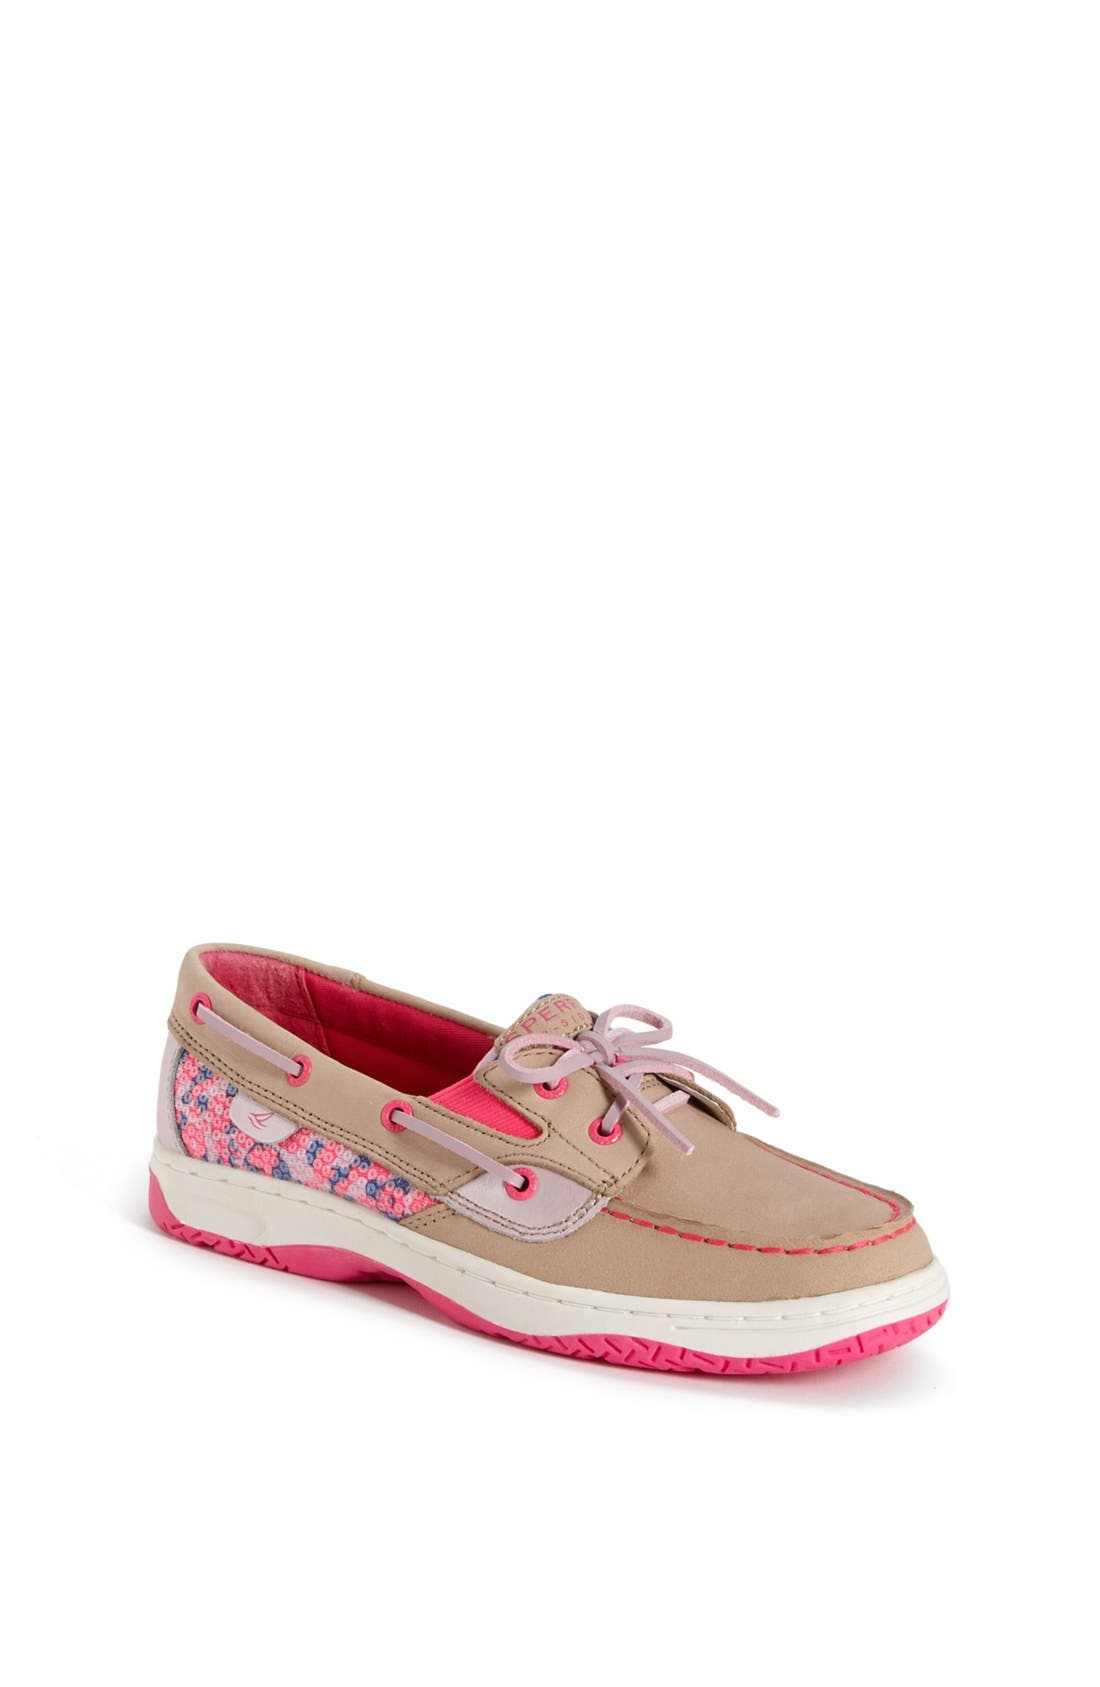 Main Image - Sperry Top-Sider® 'Butterflyfish' Boat Shoe (Walker, Toddler, Little Kid & Big Kid)